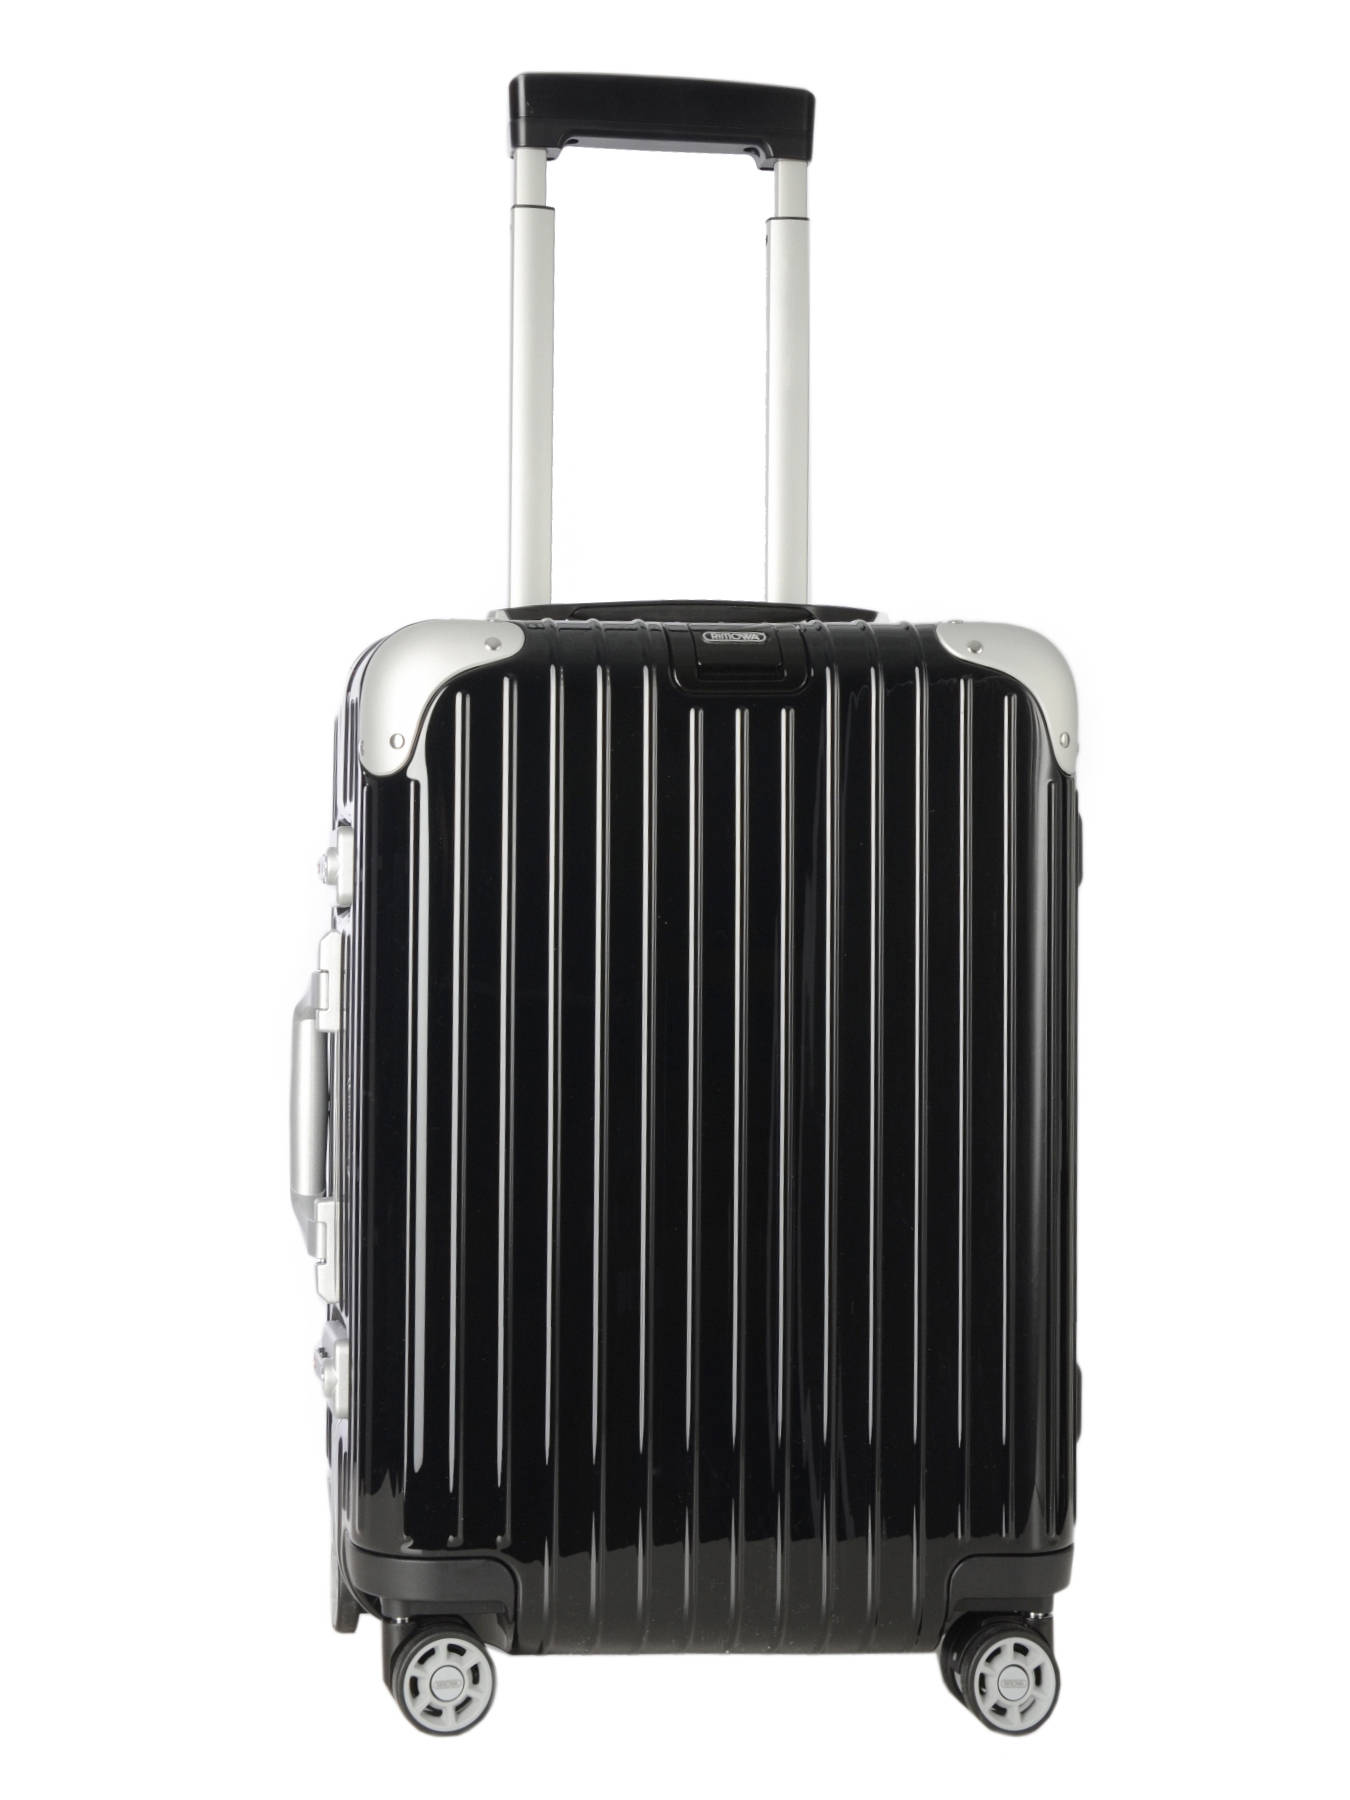 Carry-on Luggage Limbo Rimowa Black limbo 88153504